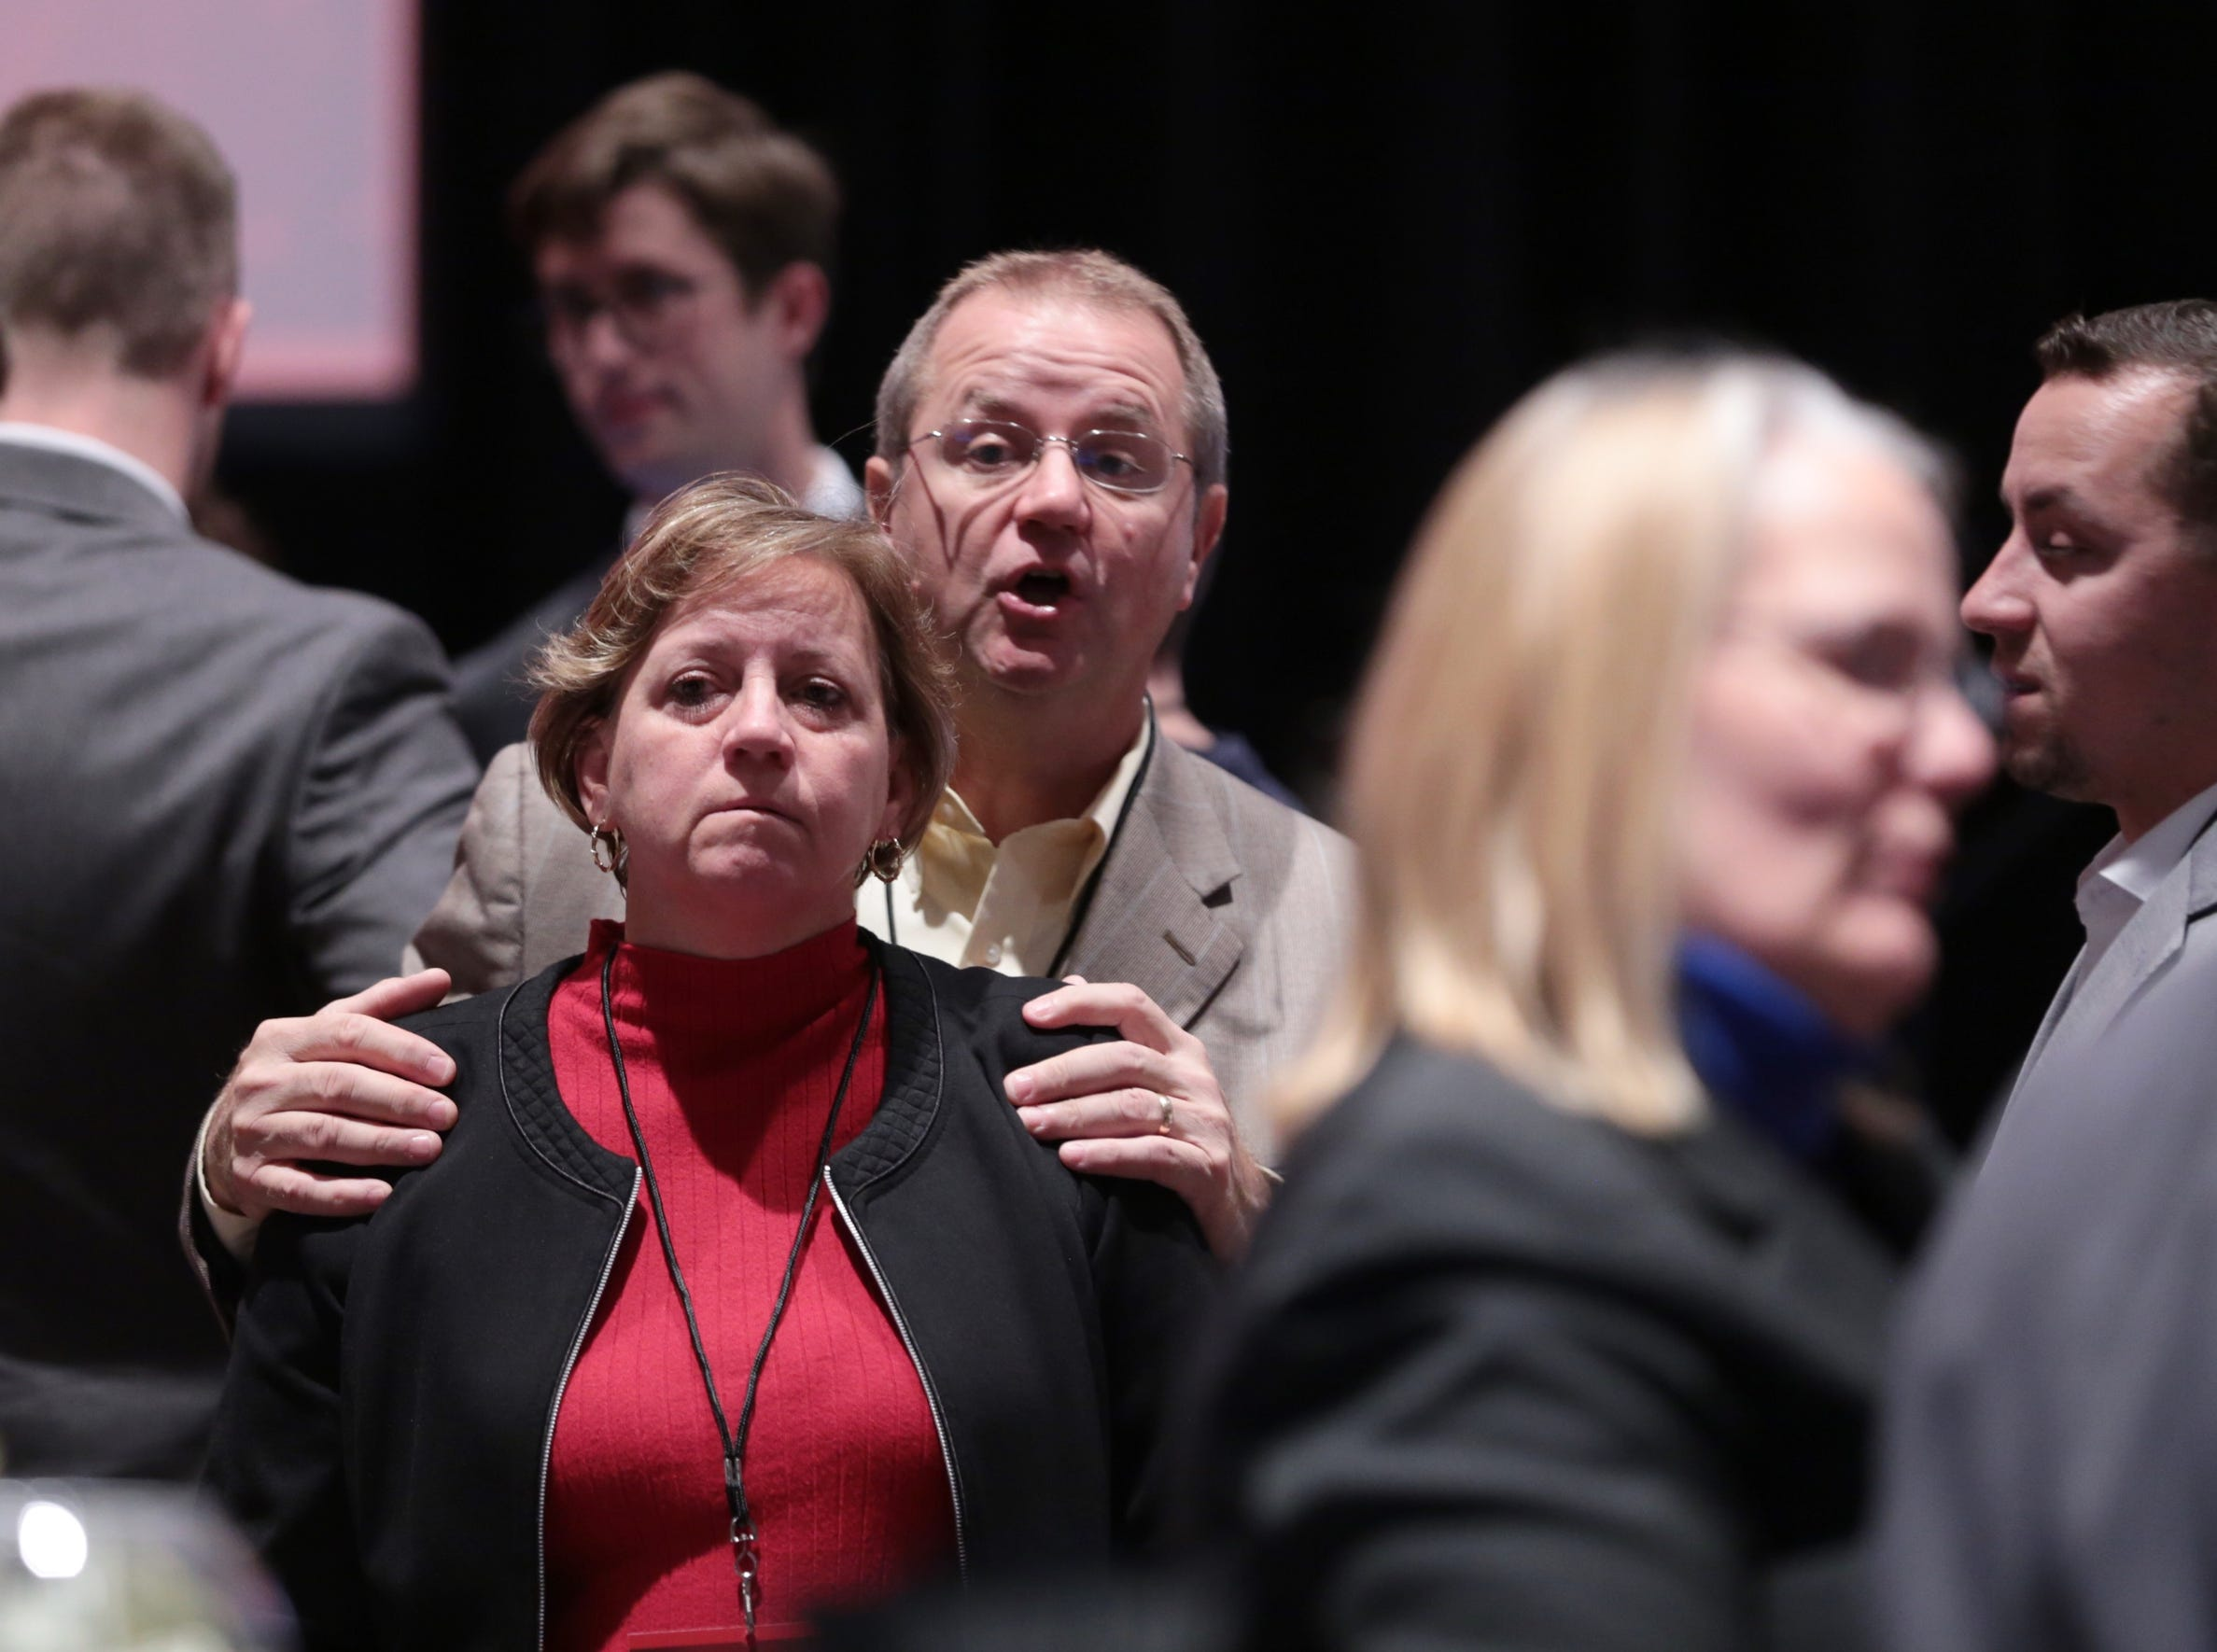 People watch results coming in during an Michigan Republican midterm election night party at the Lansing Center in Lansing on Tuesday, November 6, 2018.